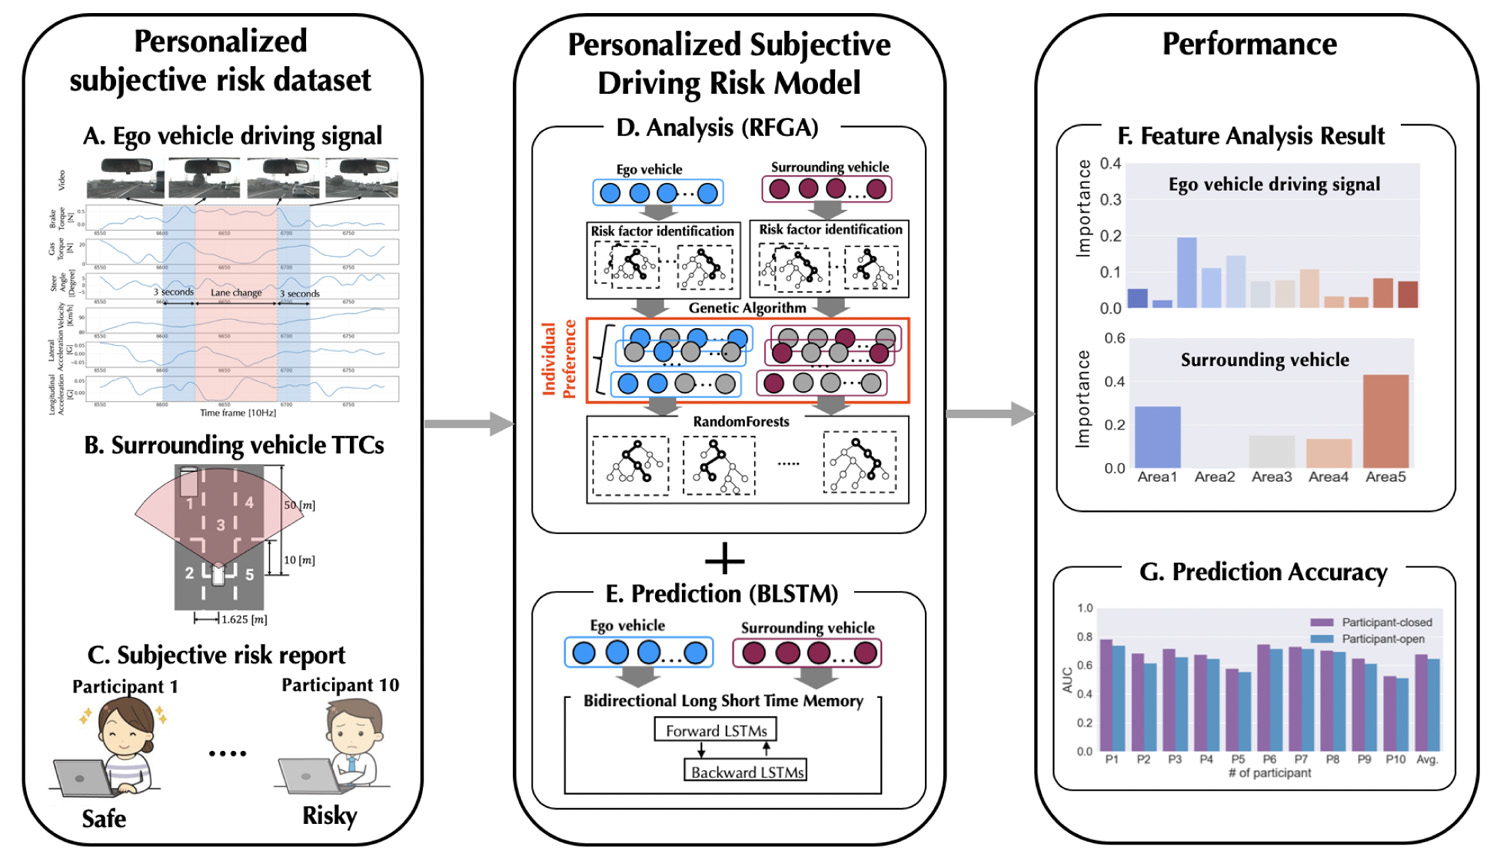 Personalized Subjective Driving Risk: Analysis and Prediction